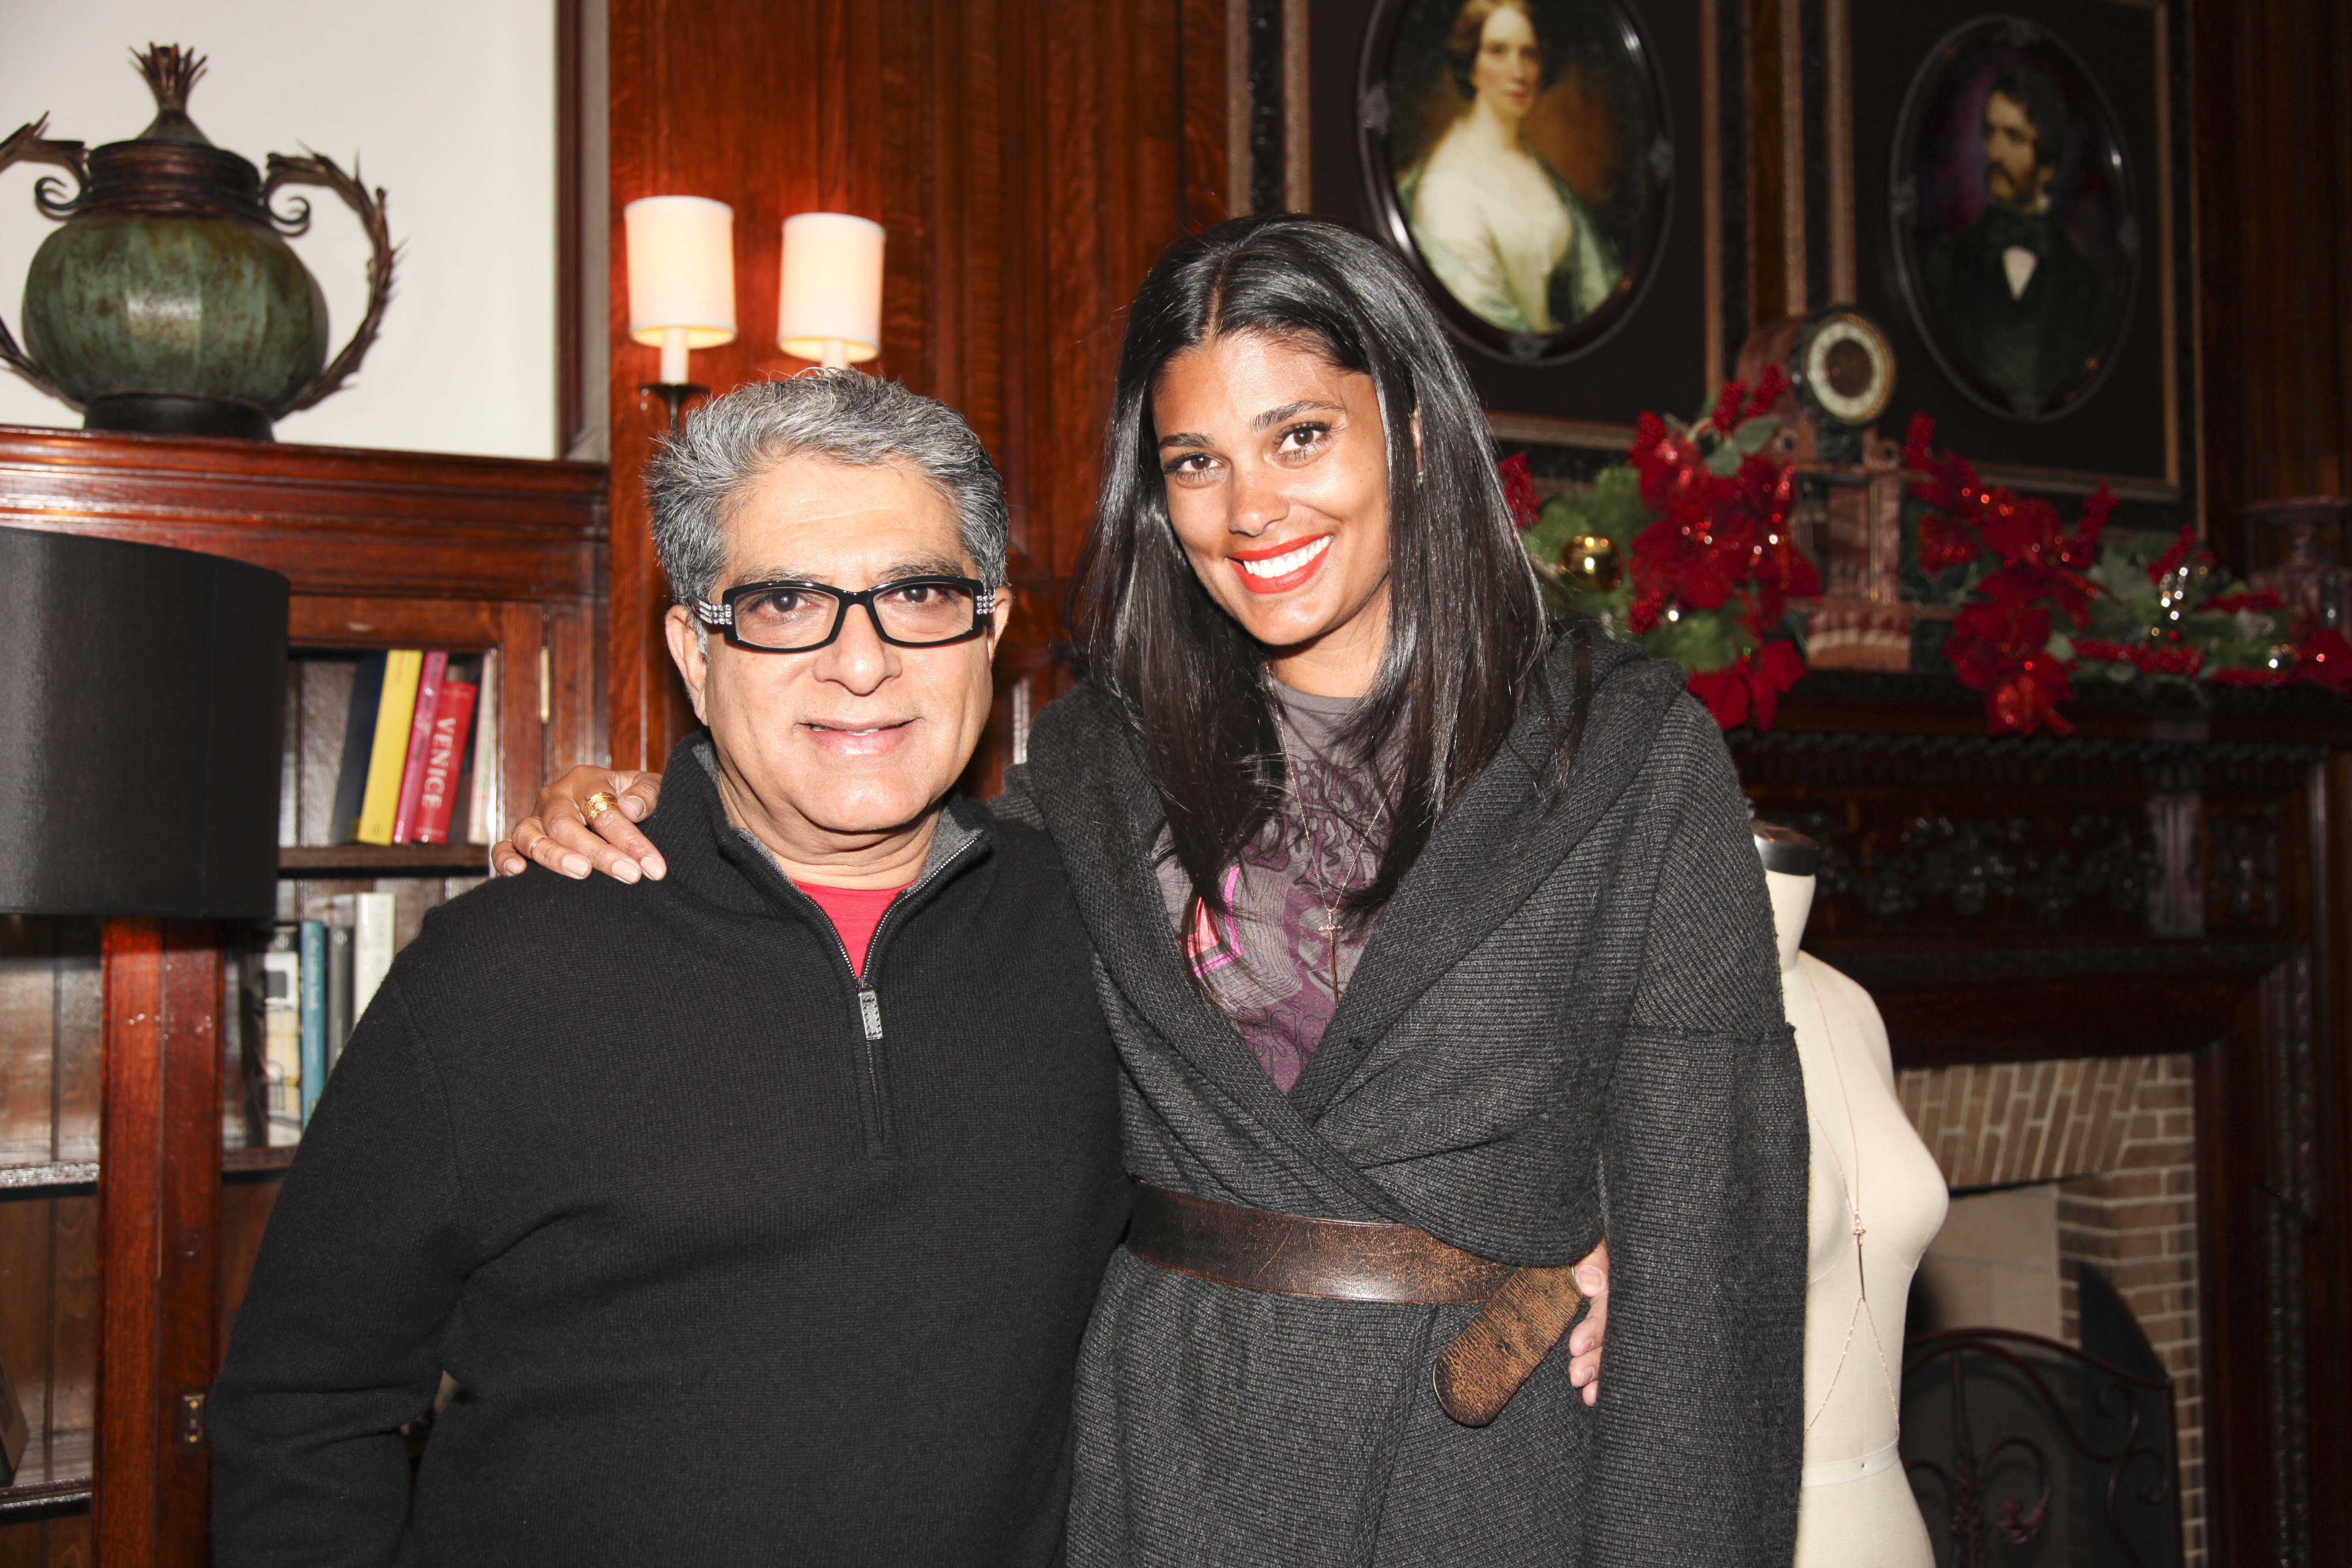 Top 9 at 9: Rachel Roy &amp; Deepak Chopra Collaborate for a Cause 